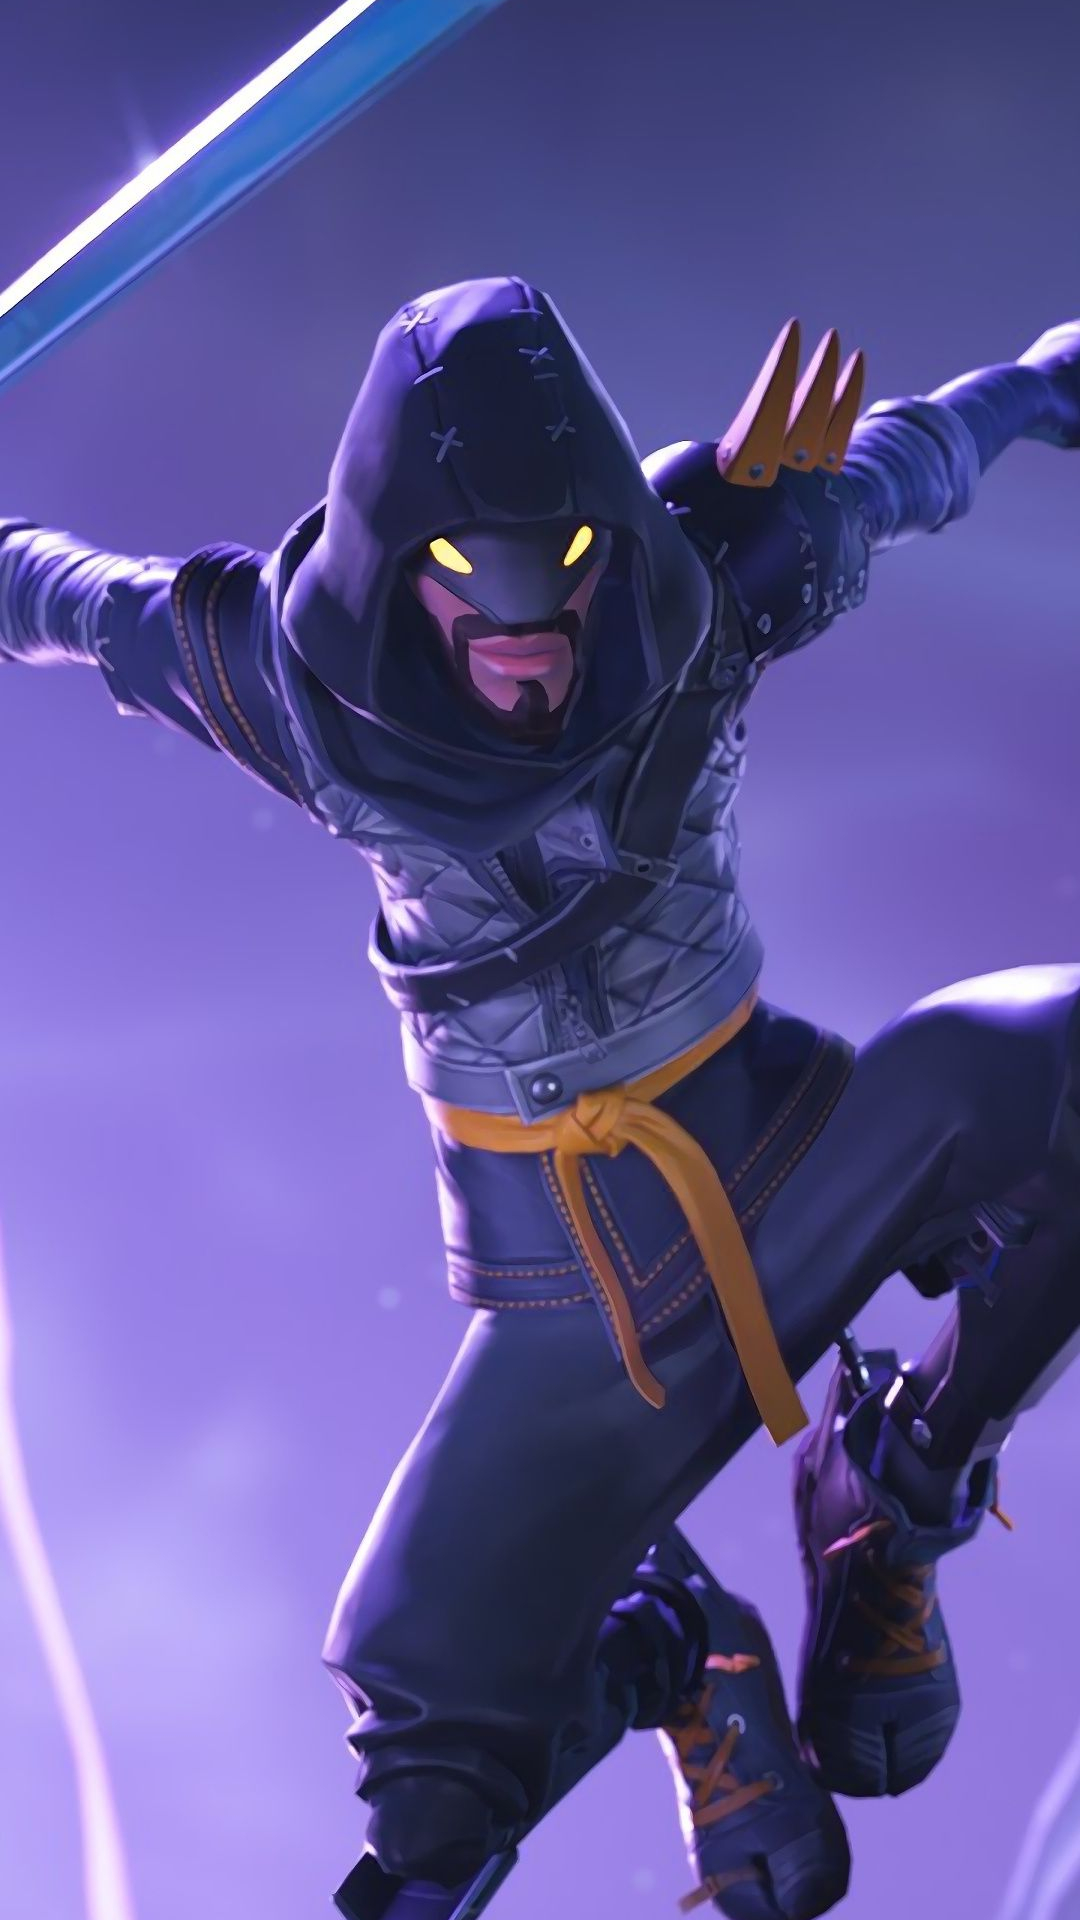 Free Download Fortnite Video Game Skin Mythic Cloaked Star Ninja 1080x2160 1080x2160 For Your Desktop Mobile Tablet Explore 32 Cloaked Star Fortnite Wallpapers Cloaked Star Fortnite Wallpapers Cloaked Shadow